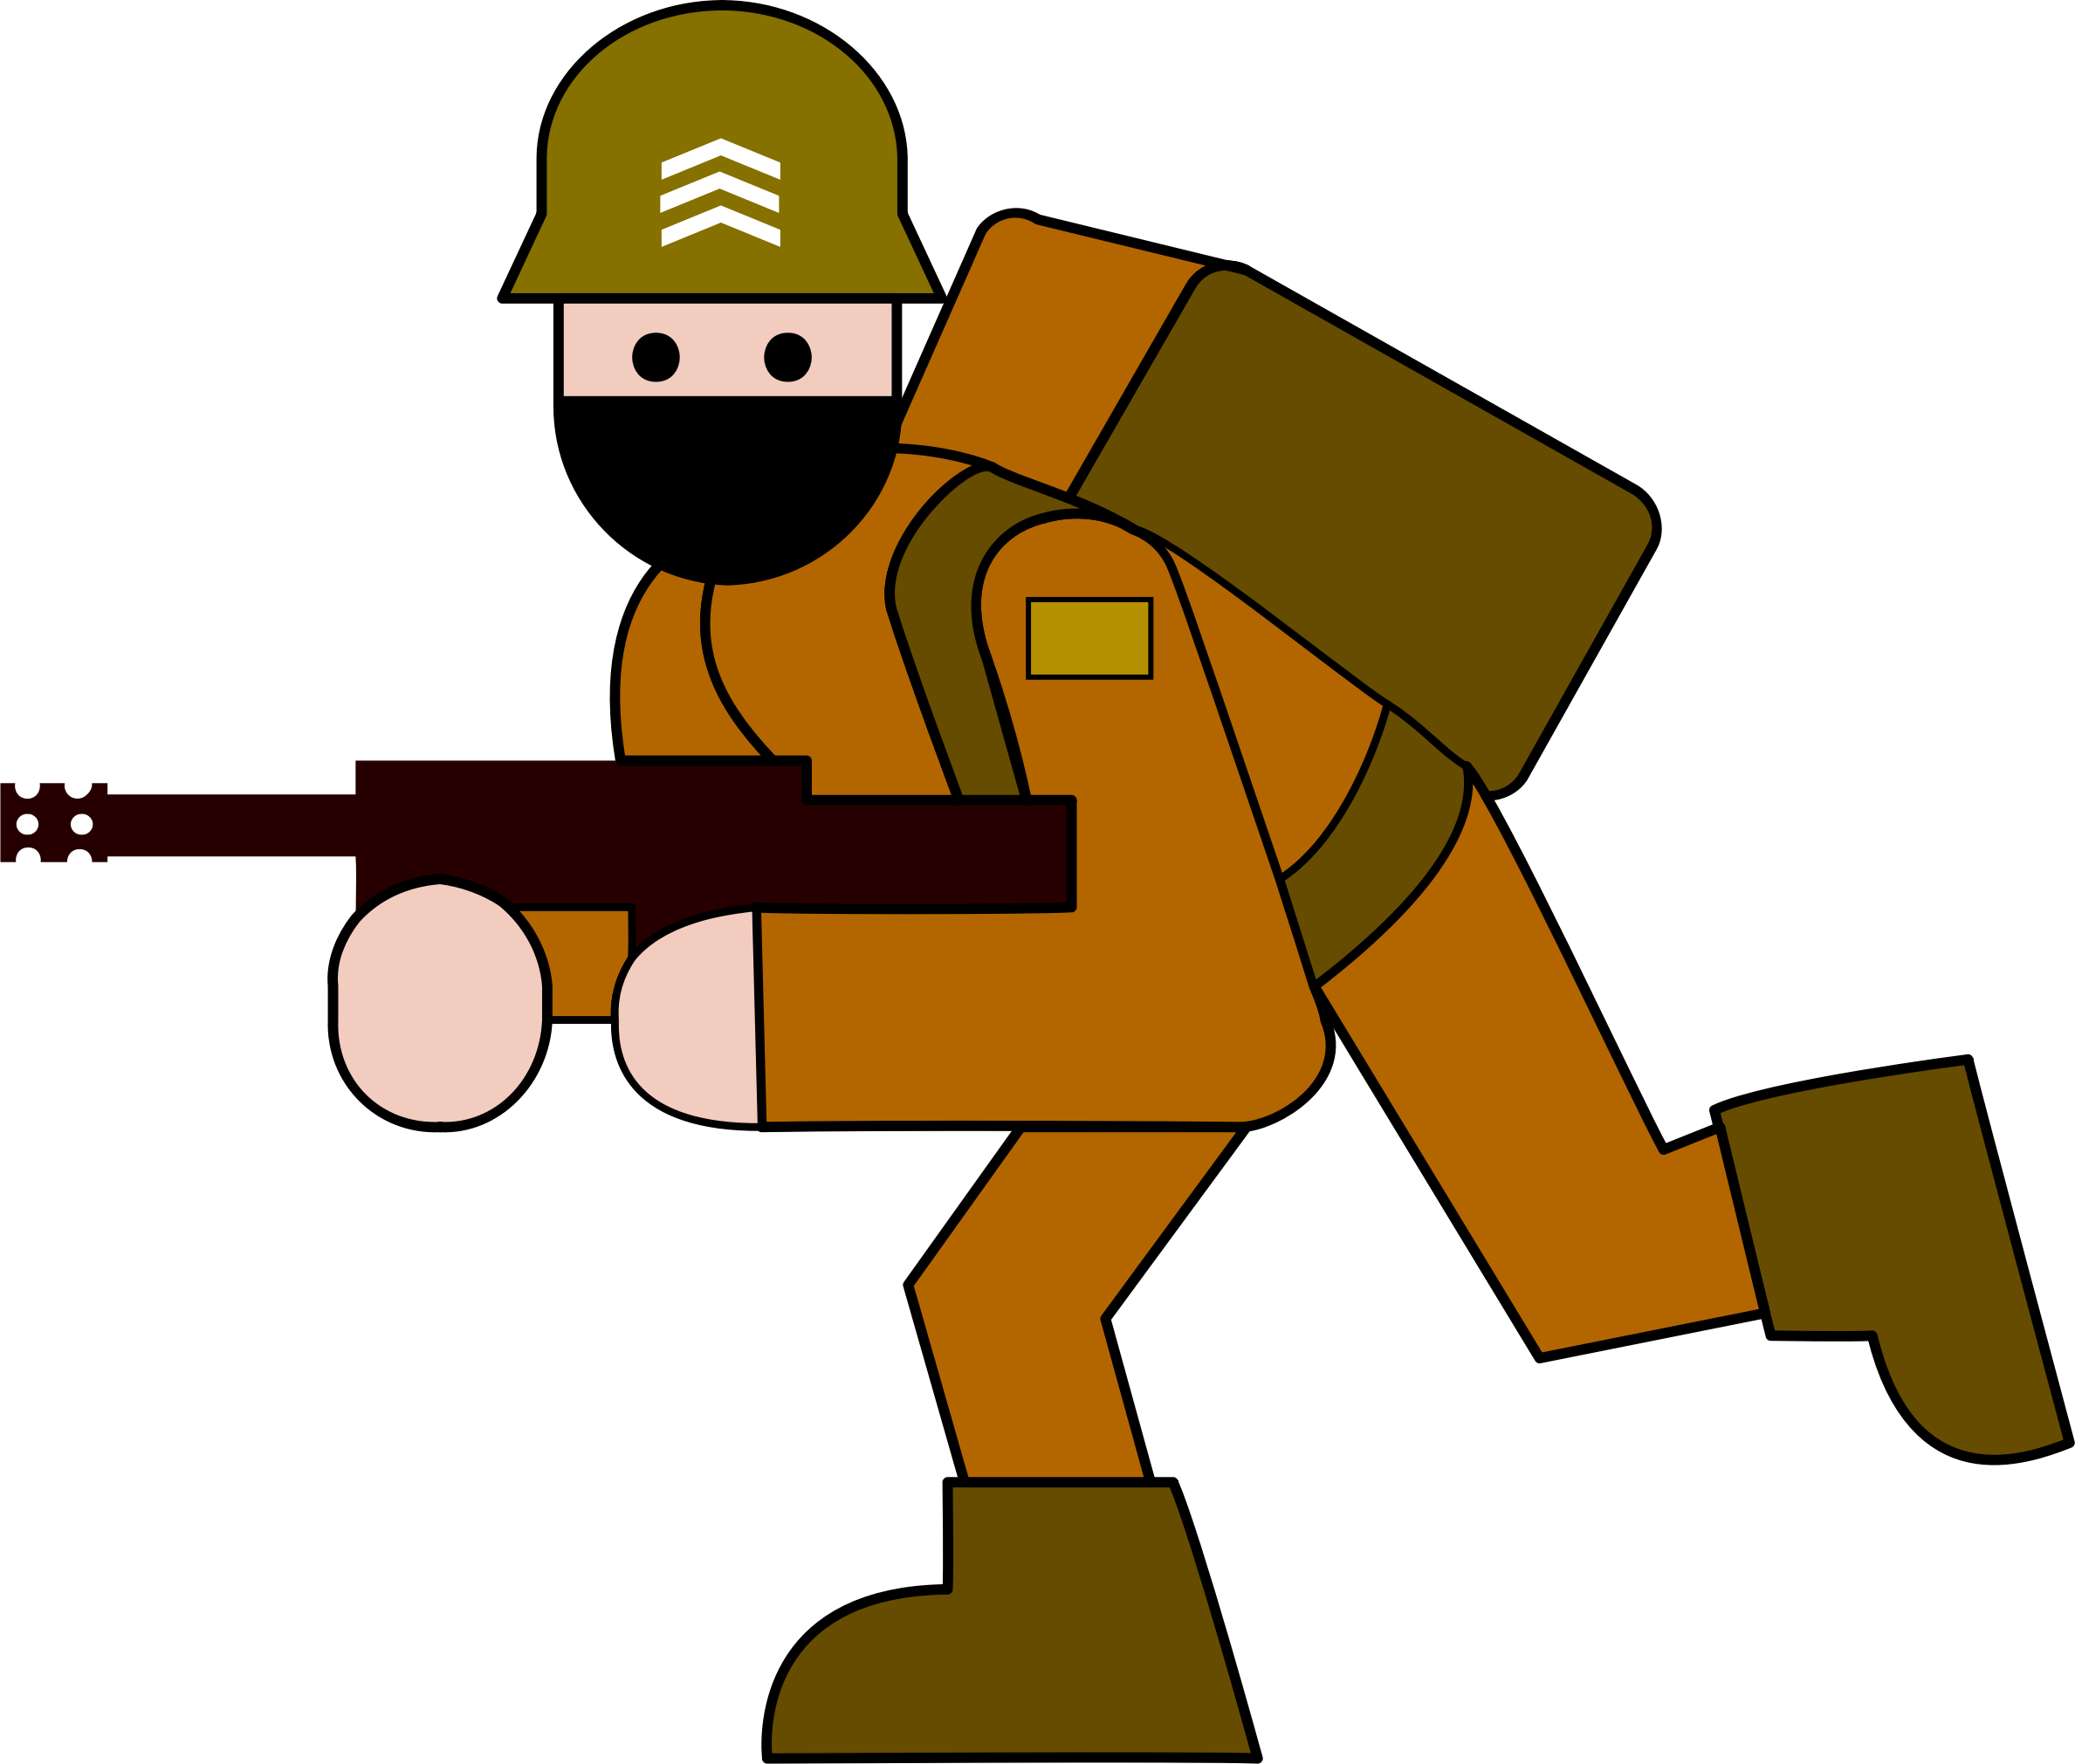 Soldier clipart comic. Military big image png